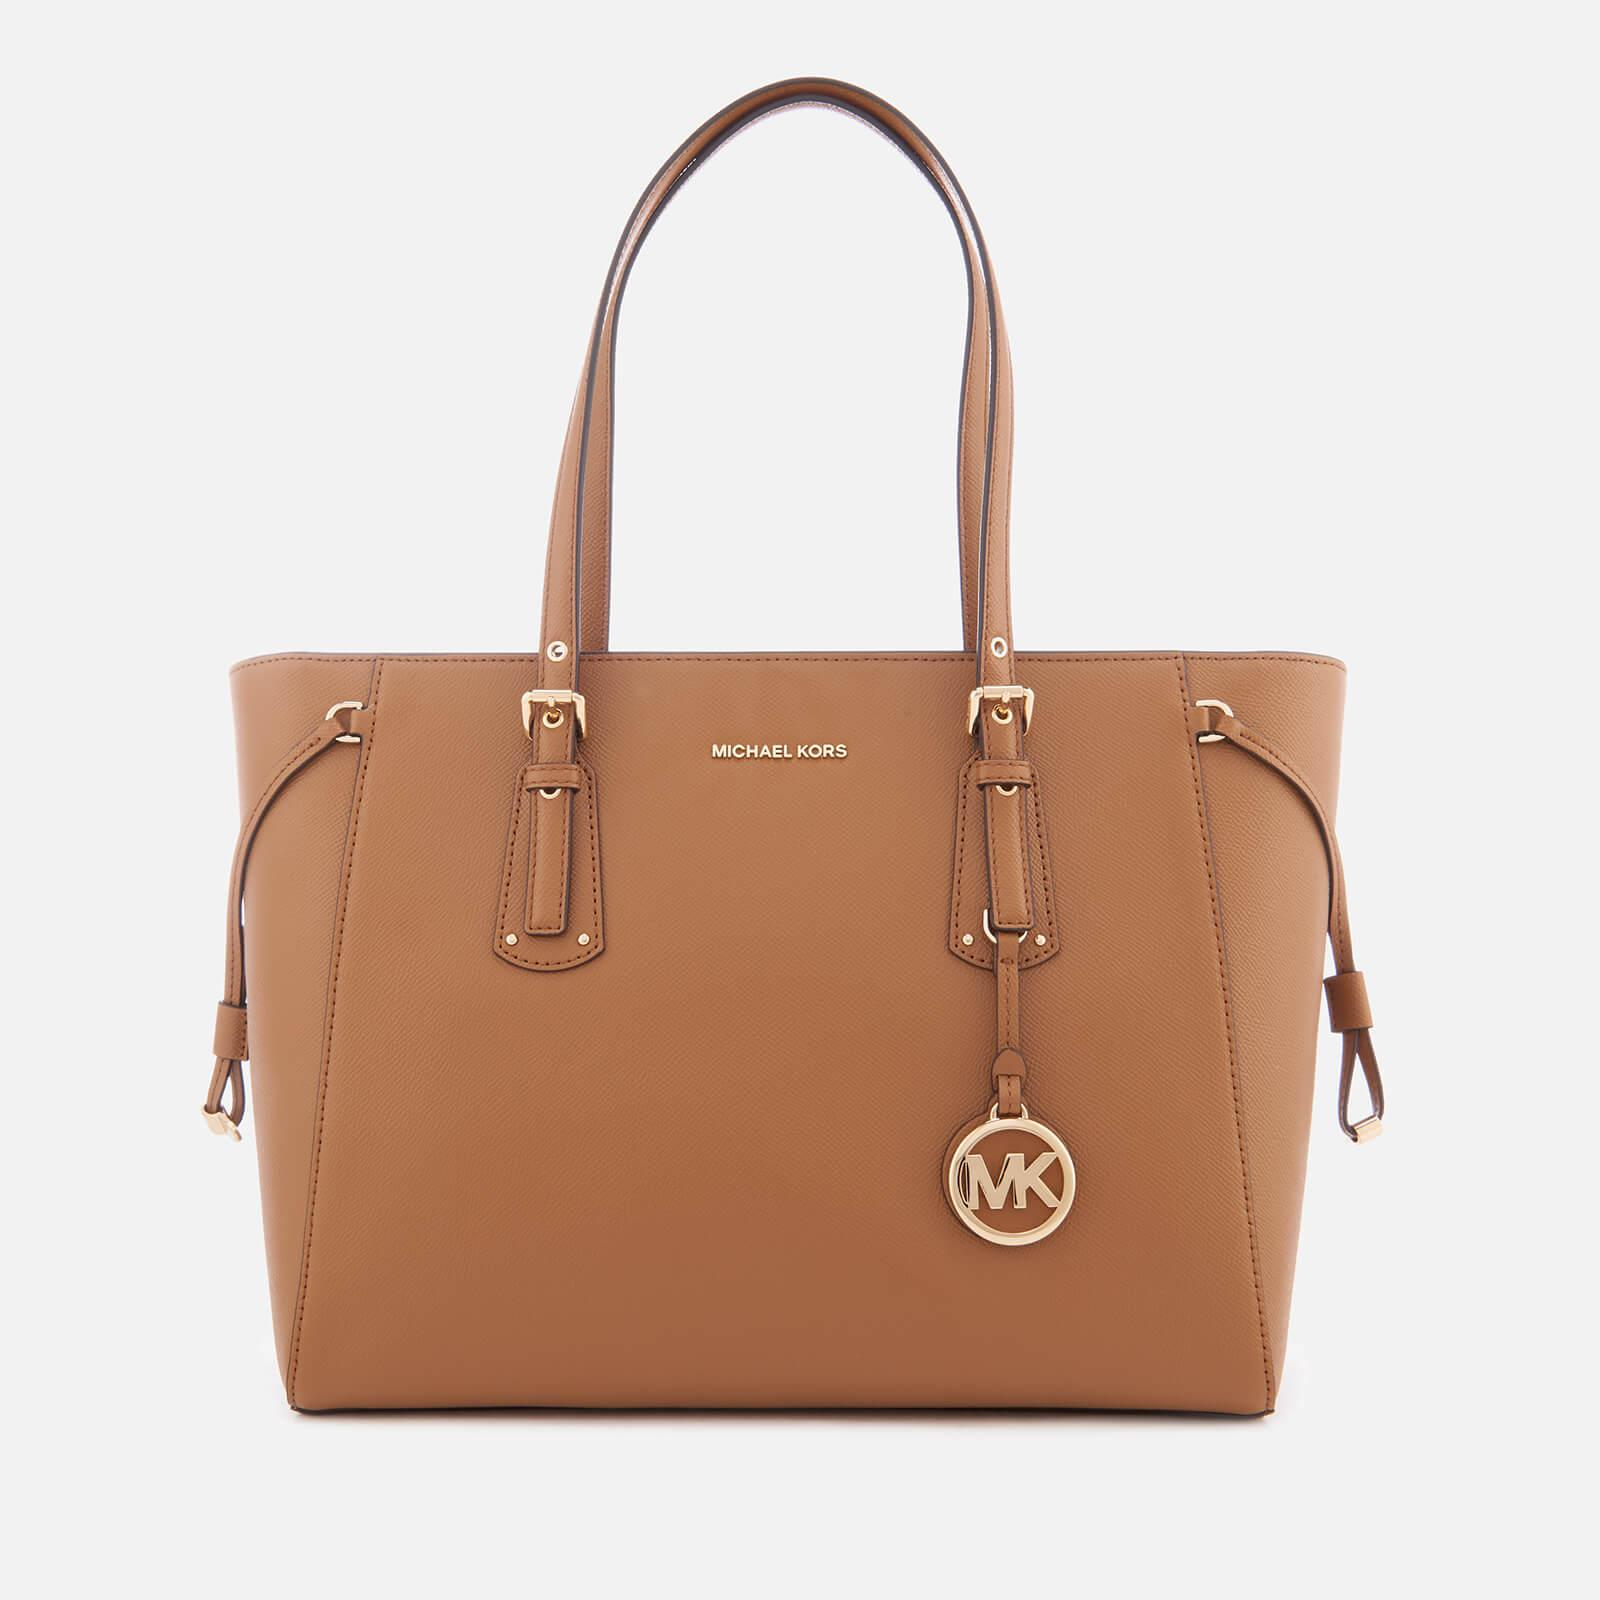 cefea3727e3e8 Lyst - MICHAEL Michael Kors Voyager Medium Tote Bag in Brown - Save 59%